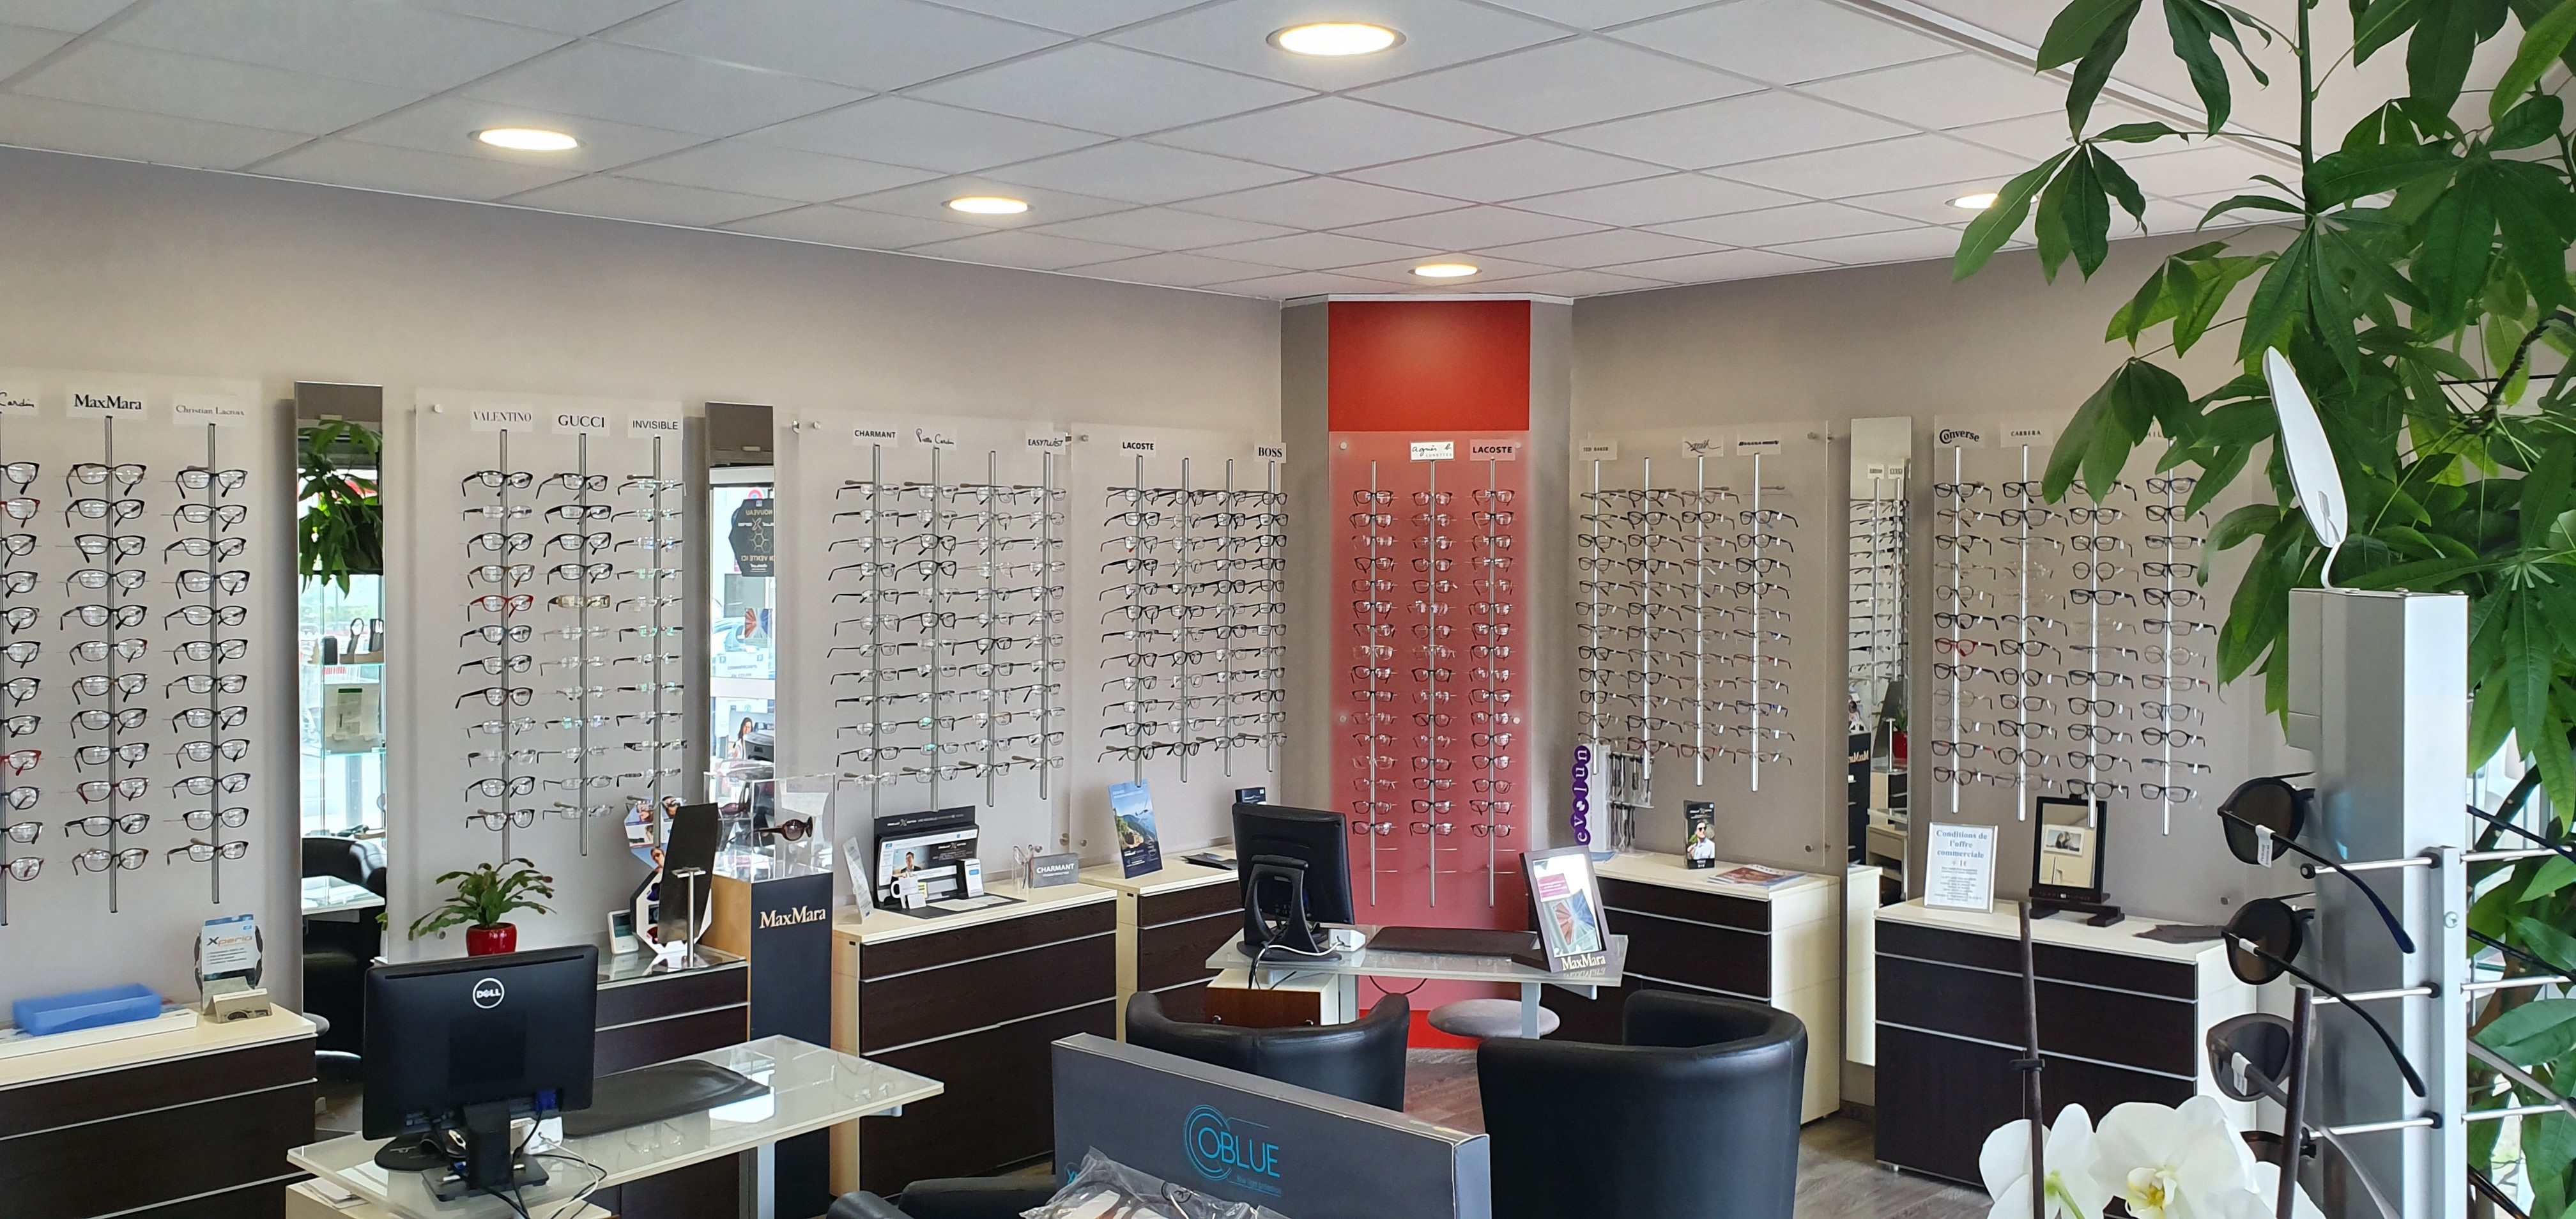 Opticien : CLAIRVISION, 13 Avenue Jeanne d'arc, 95600 EAUBONNE